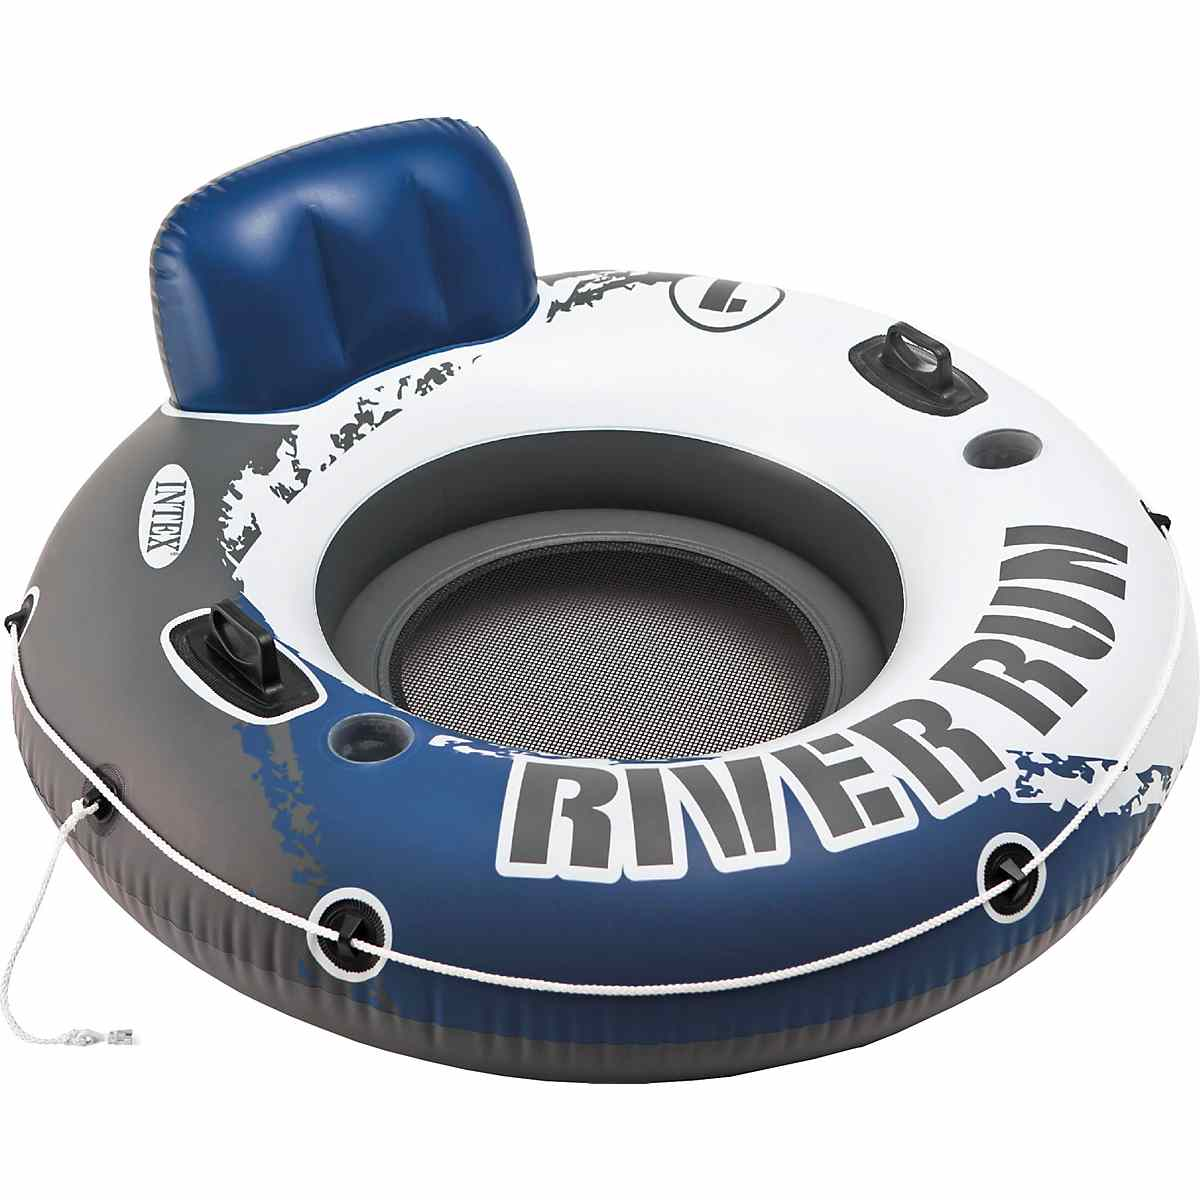 Intex River Run I Tube $7.79, More + free shipping on $25